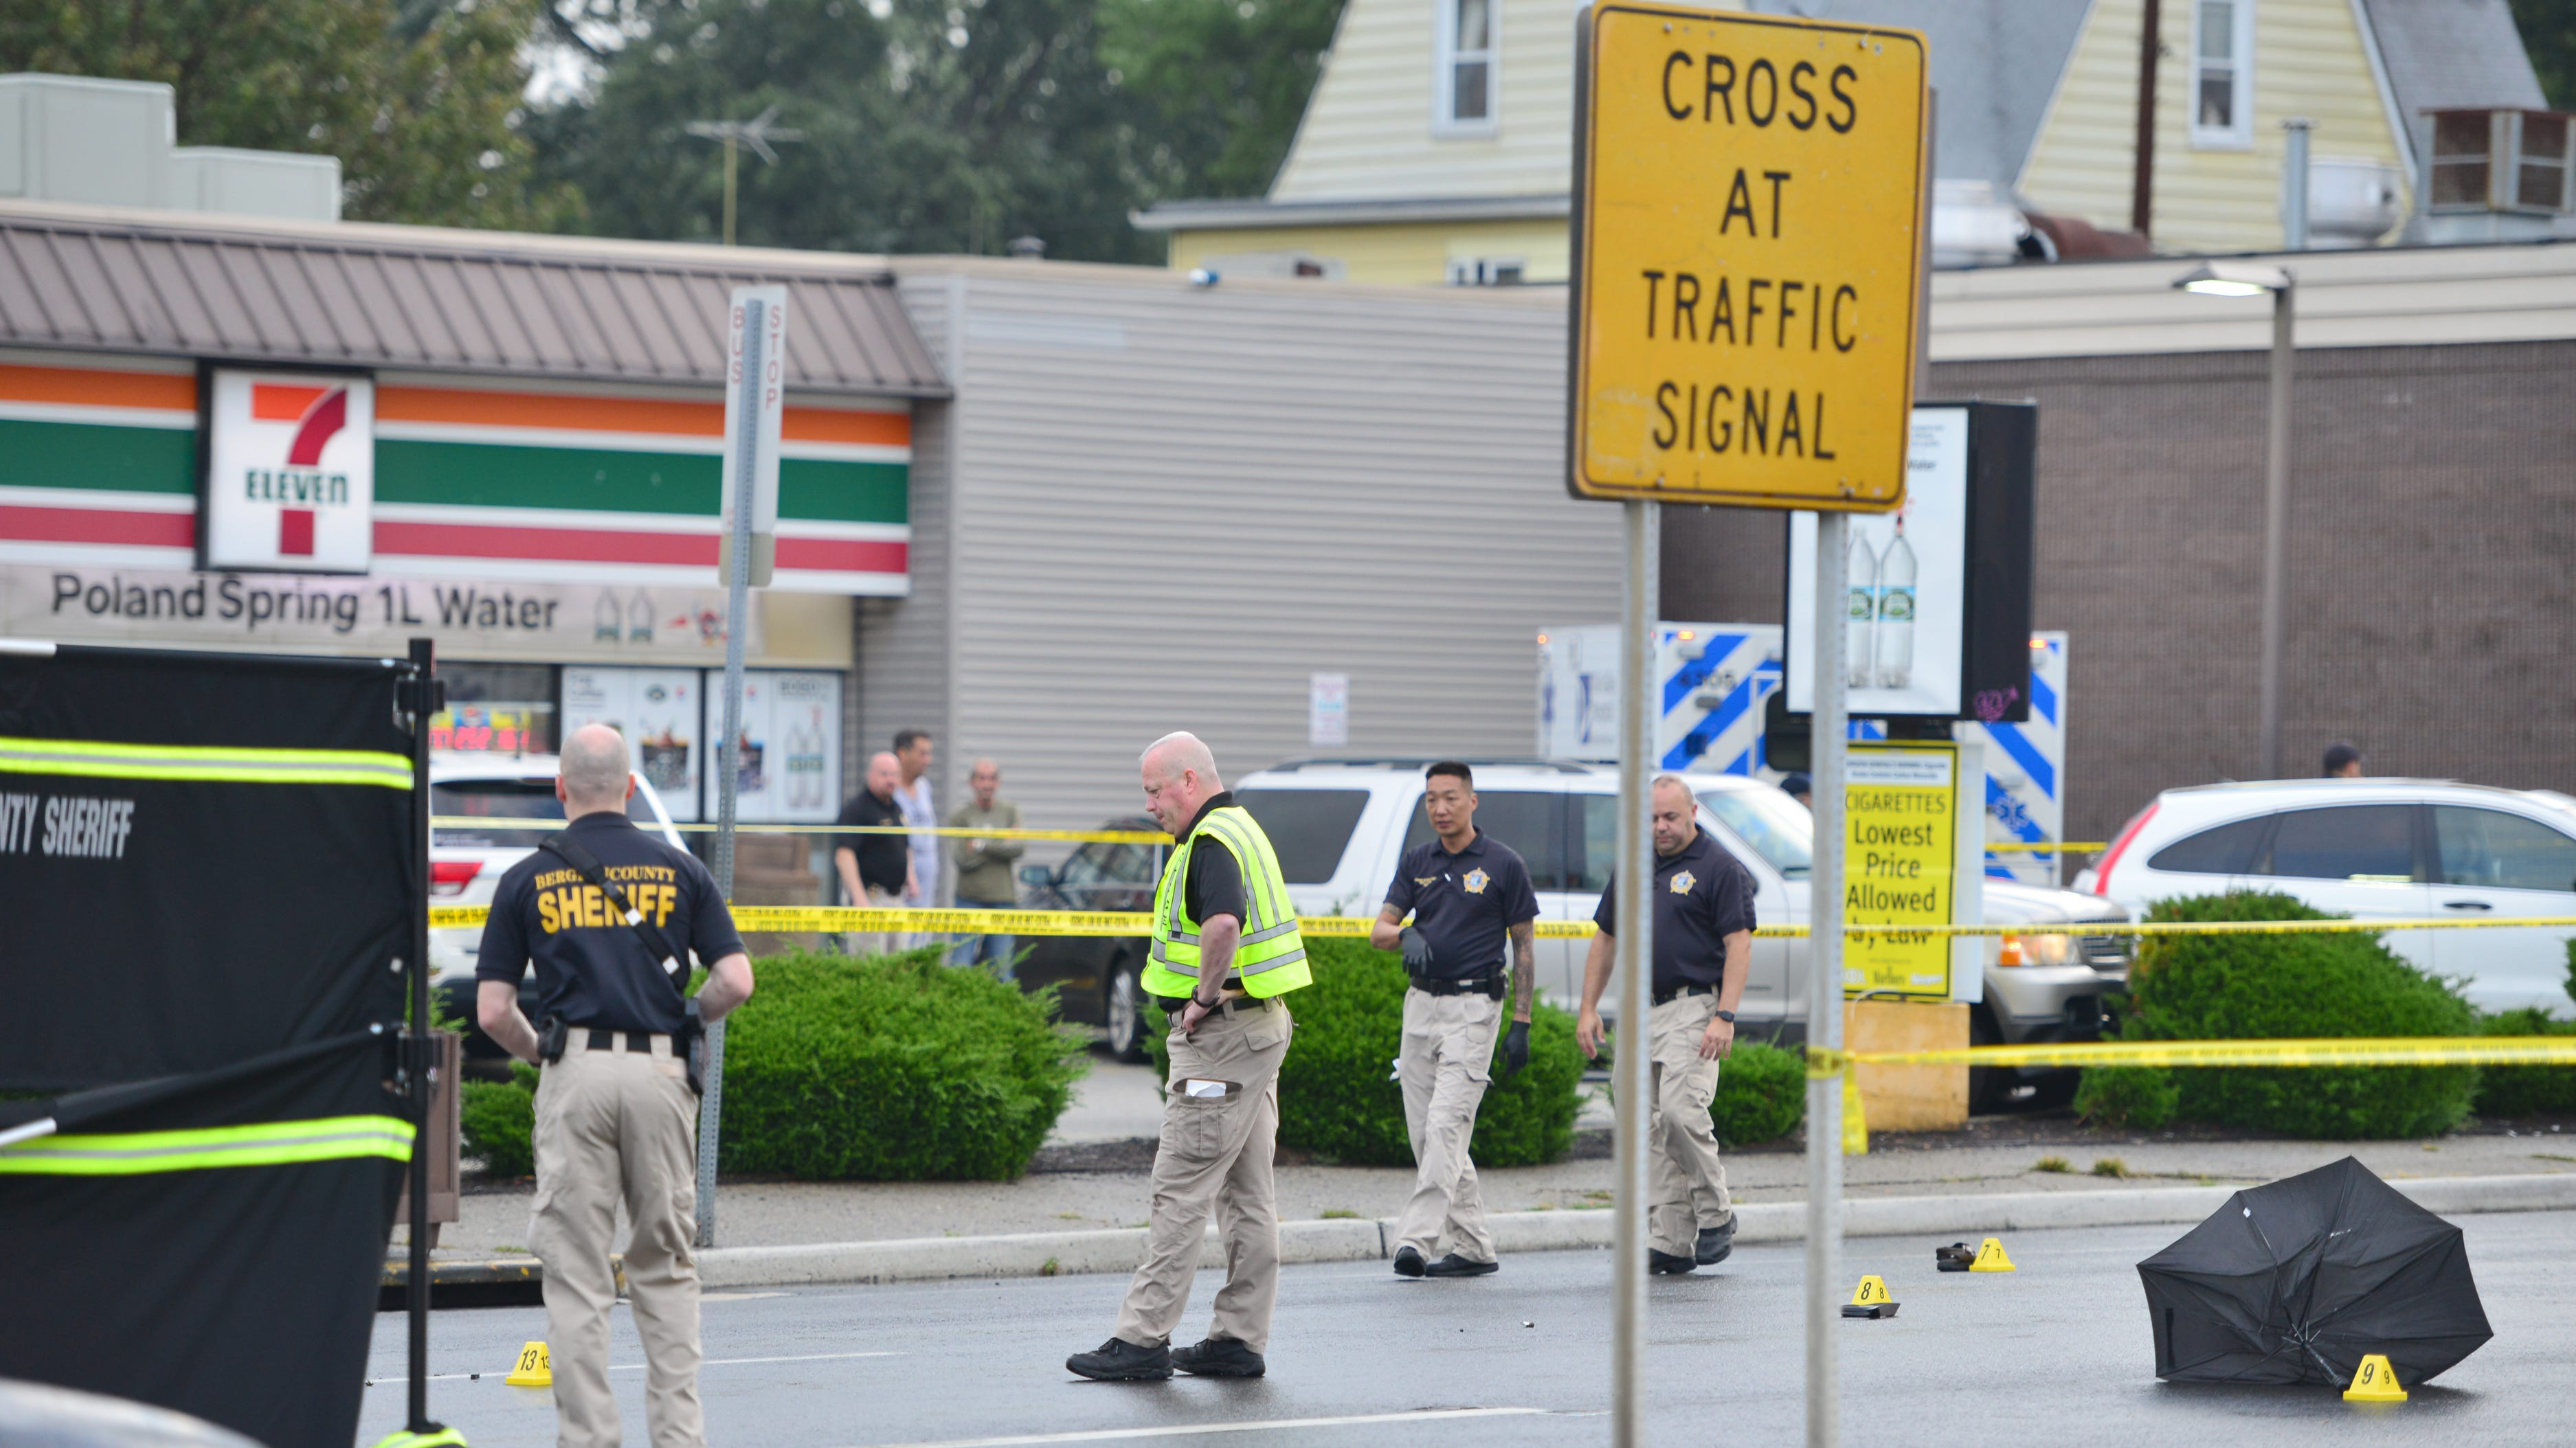 A pedestrian was struck and killed by a car while crossing Broadway in Elmwood Park, N.C. on Tuesday morning on September 18, 2018.